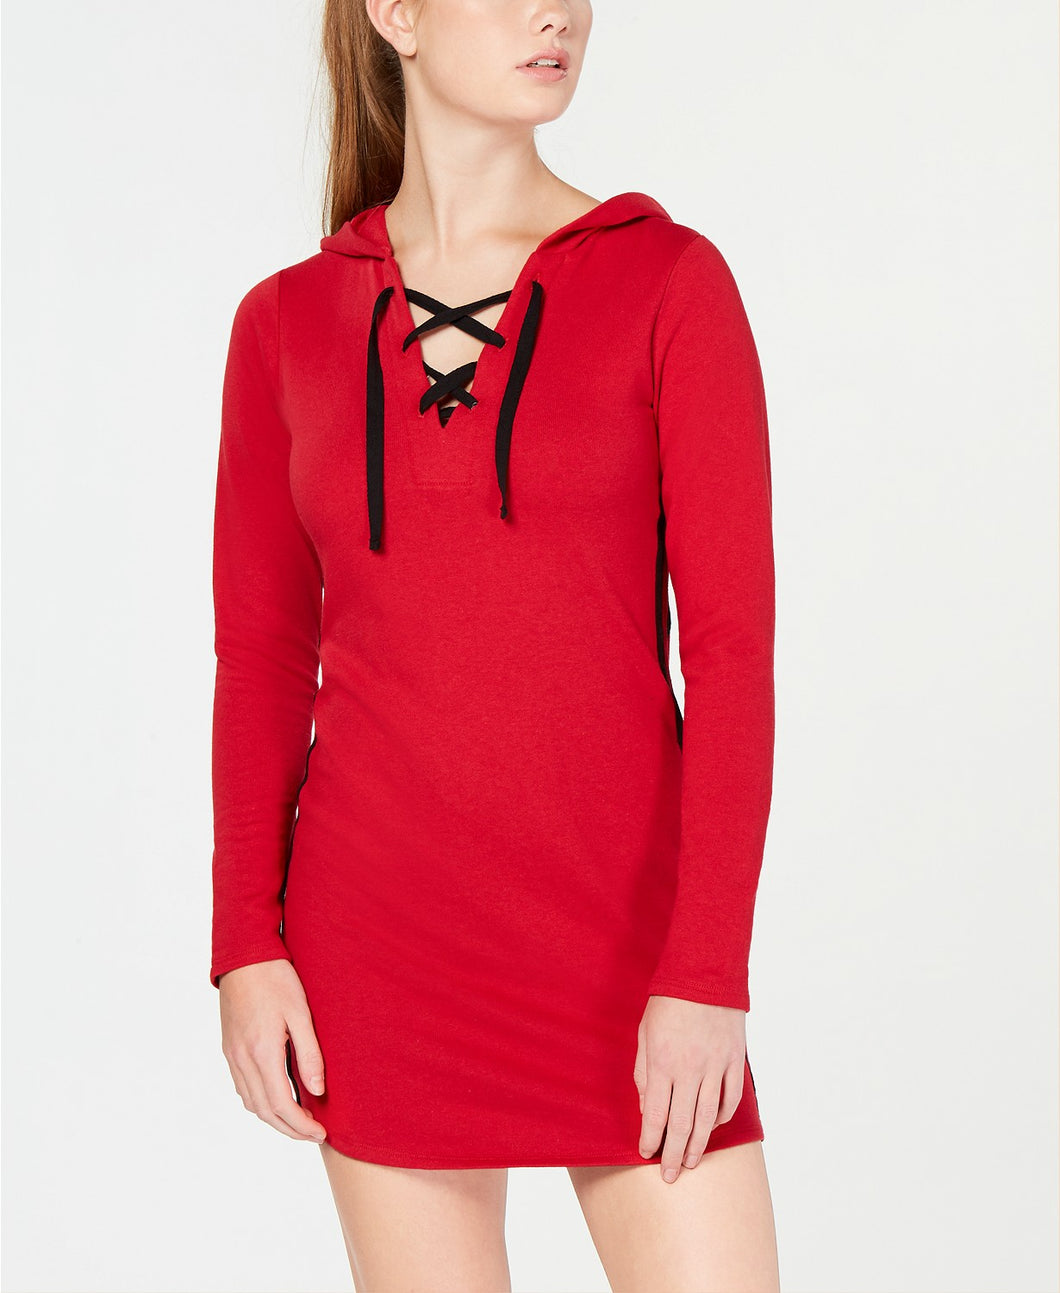 Material Girl Juniors' Varsity-Stripe Sweater Dress Jester Red M